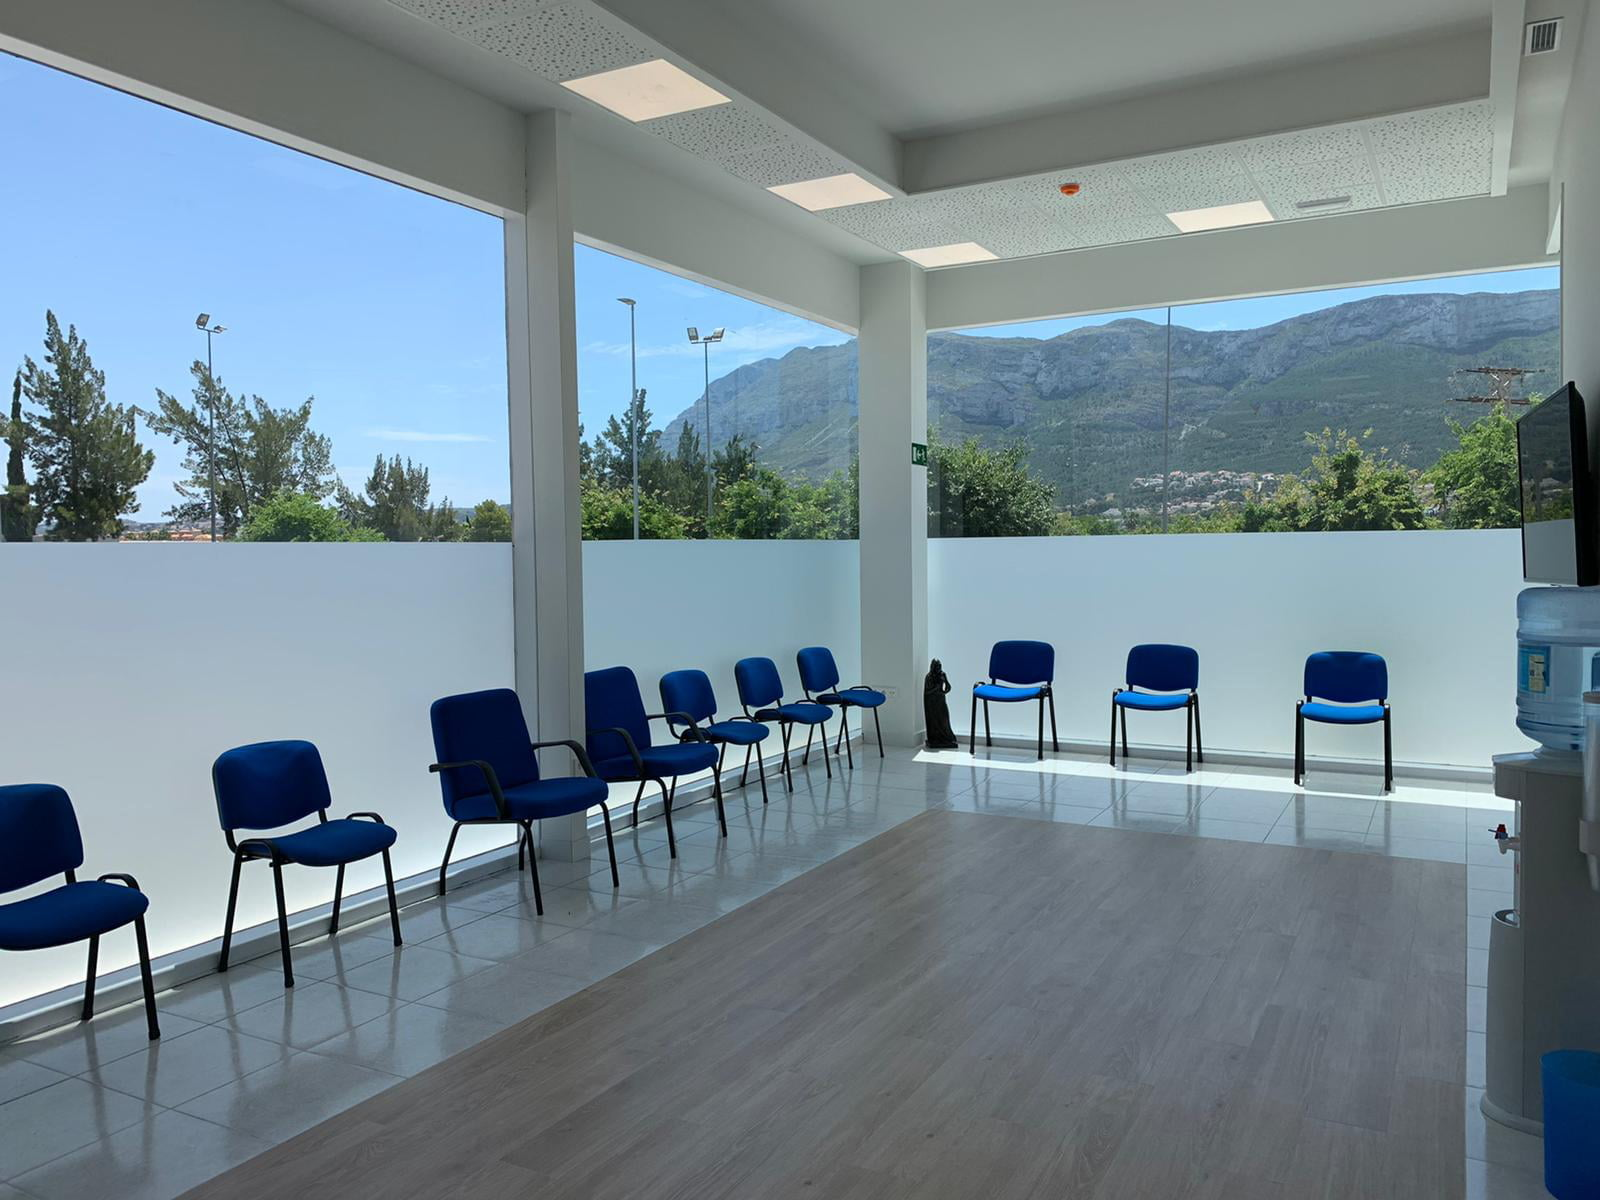 Glorieta Polyclinic waiting room